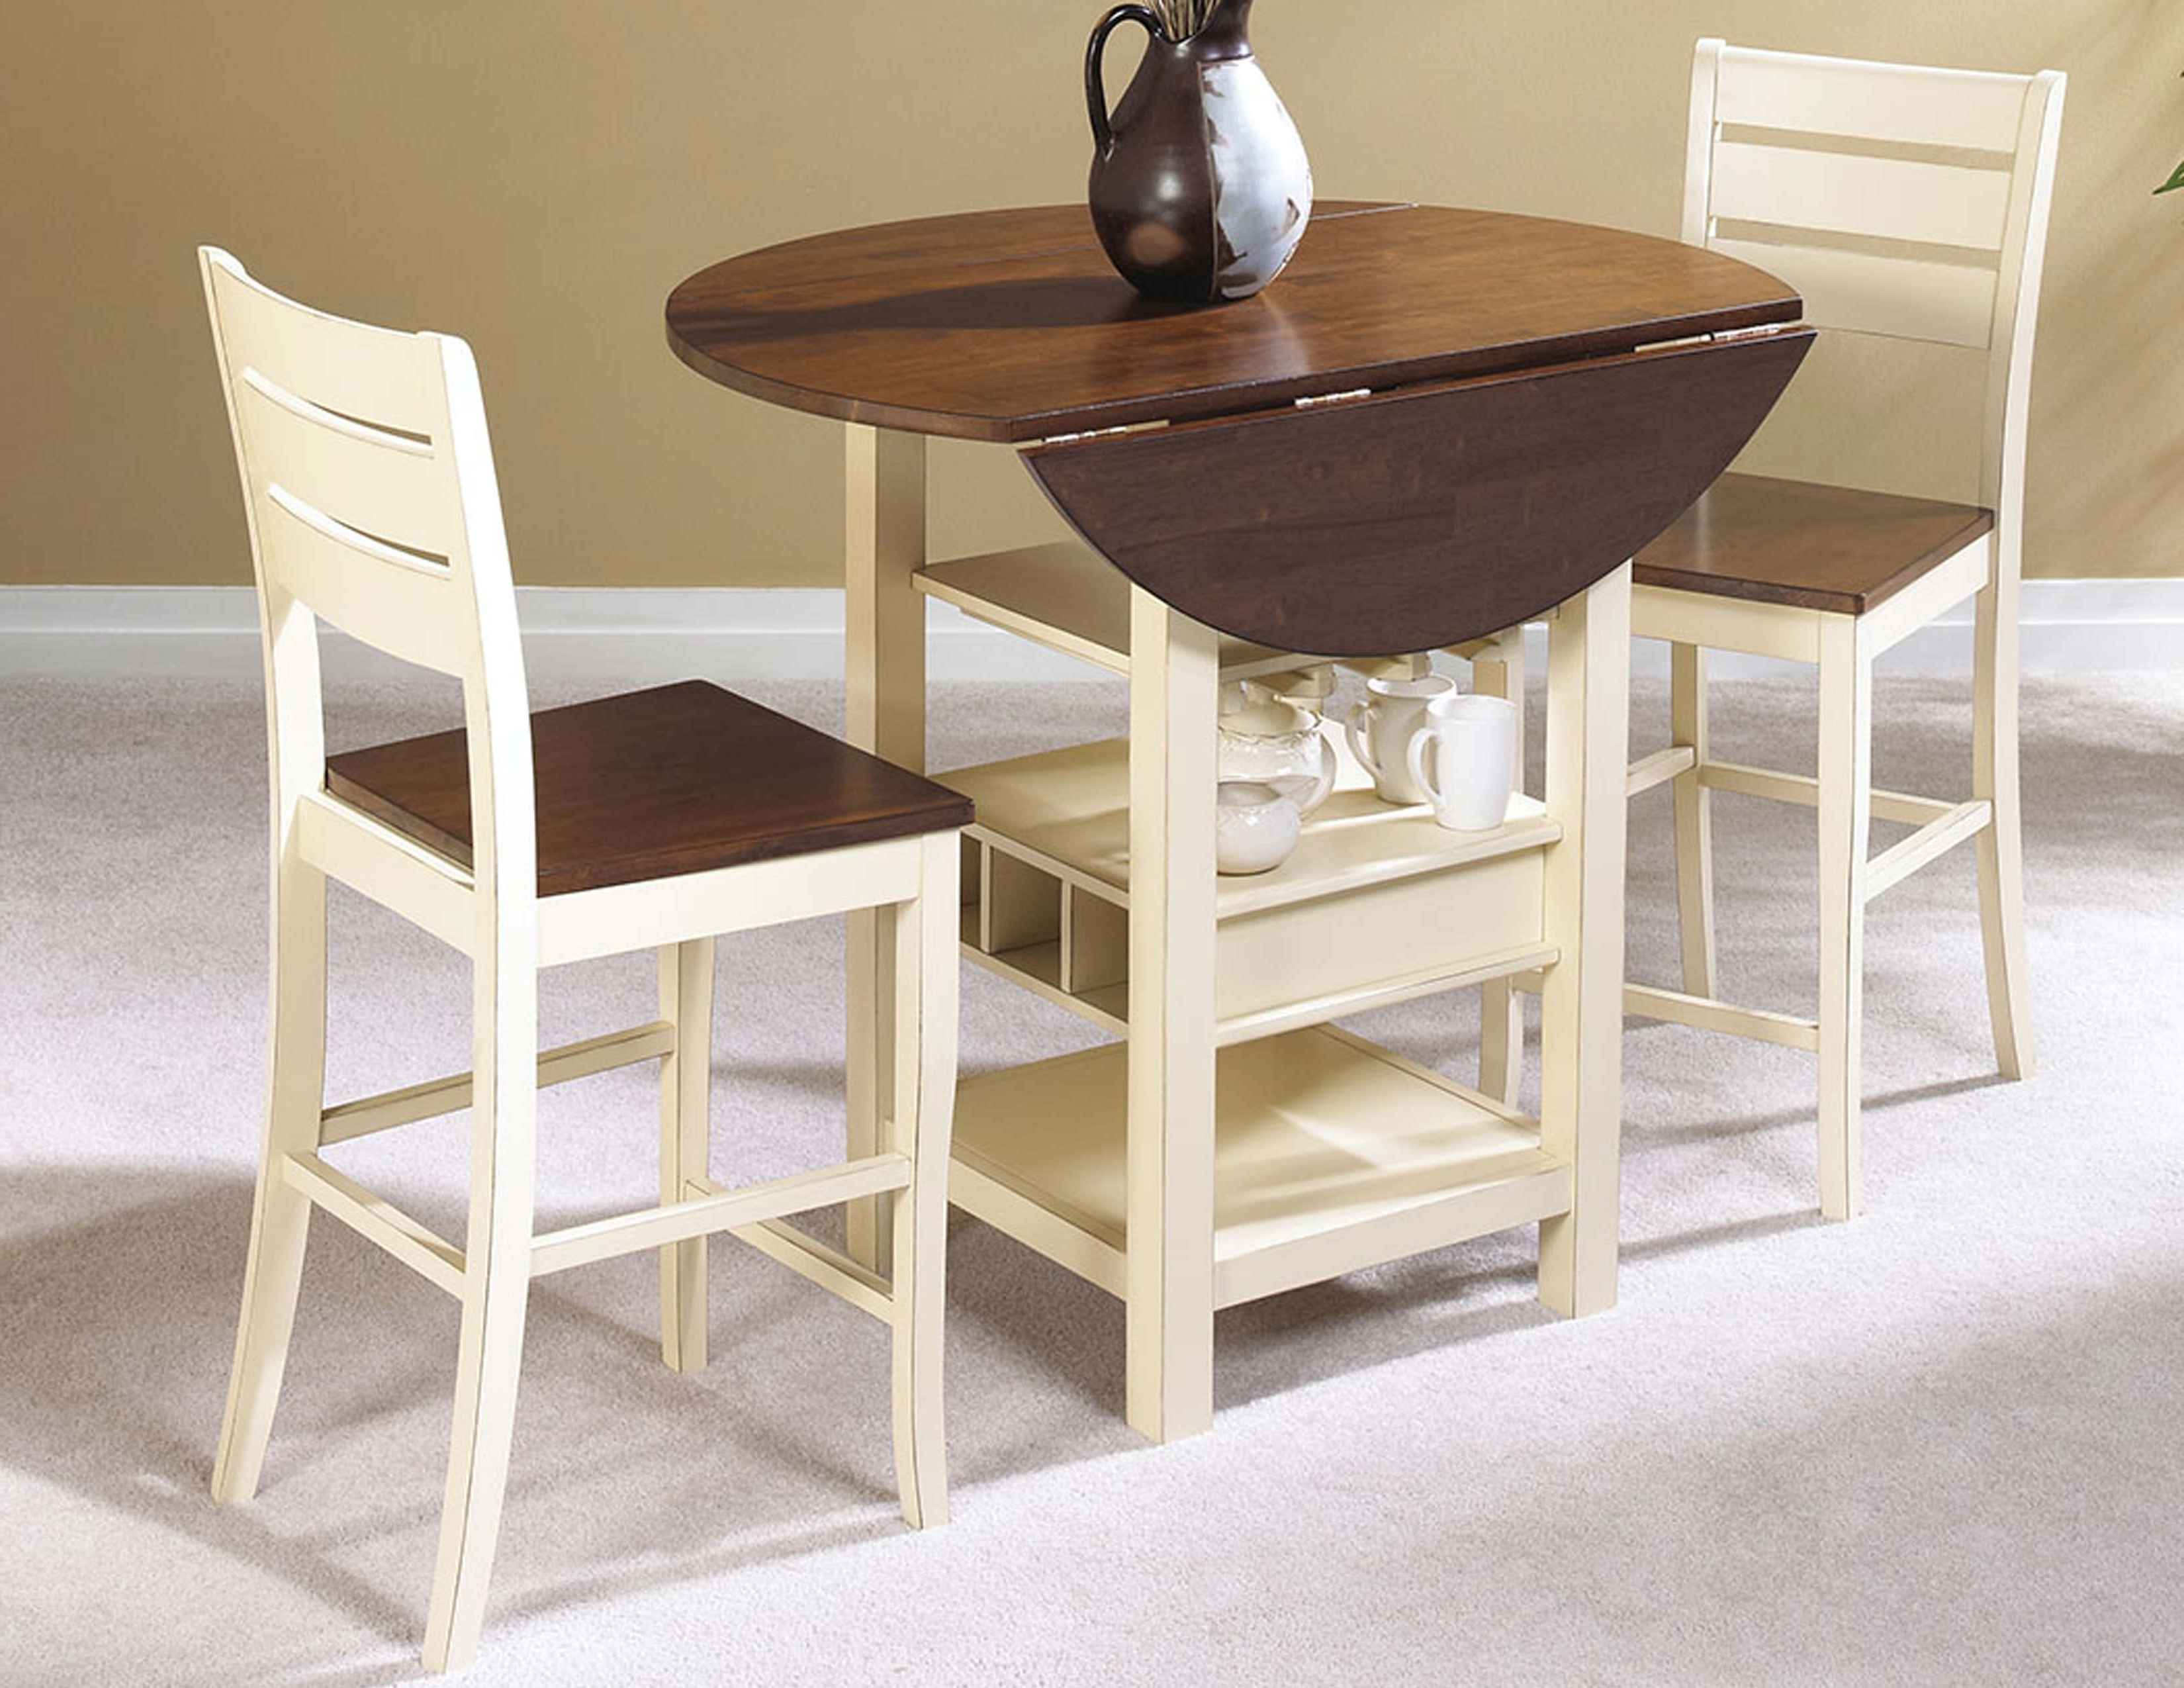 Very Small Round Drop Leaf Dining Table With Wine And Pier One for Well-liked Small Dining Tables For 2